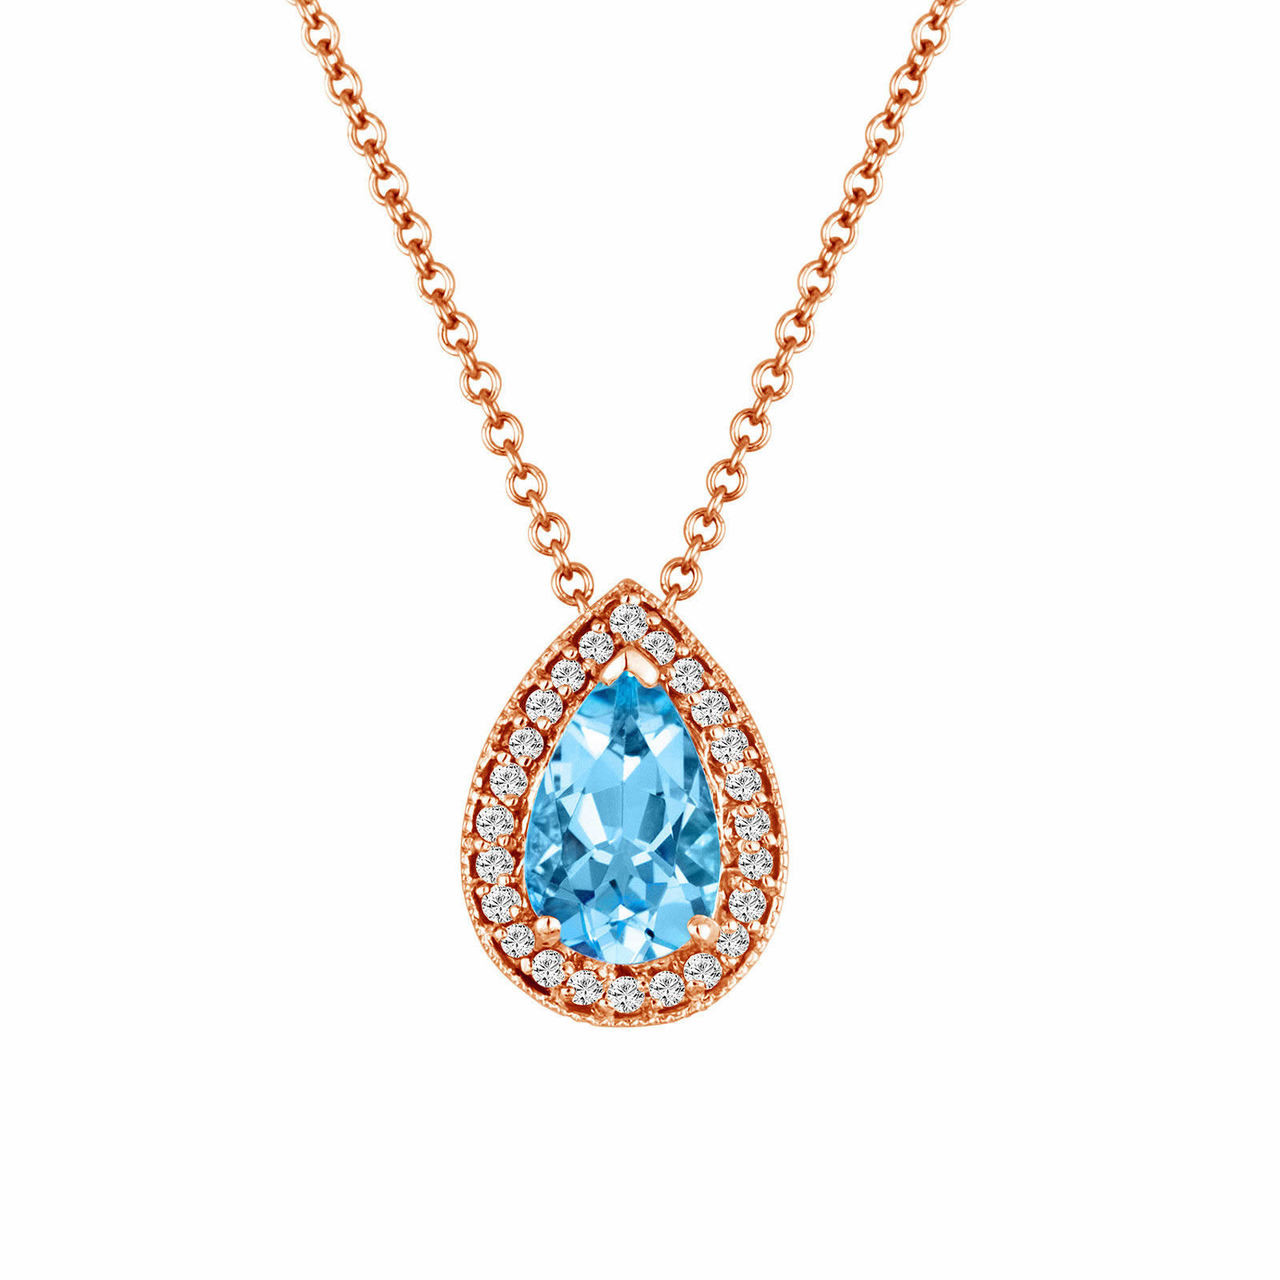 Aquamarine pendant rose gold pear shape aquamarine diamonds aquamarine pendant rose gold pear shape aquamarine diamonds pendant necklace 084 carat handmade aloadofball Image collections